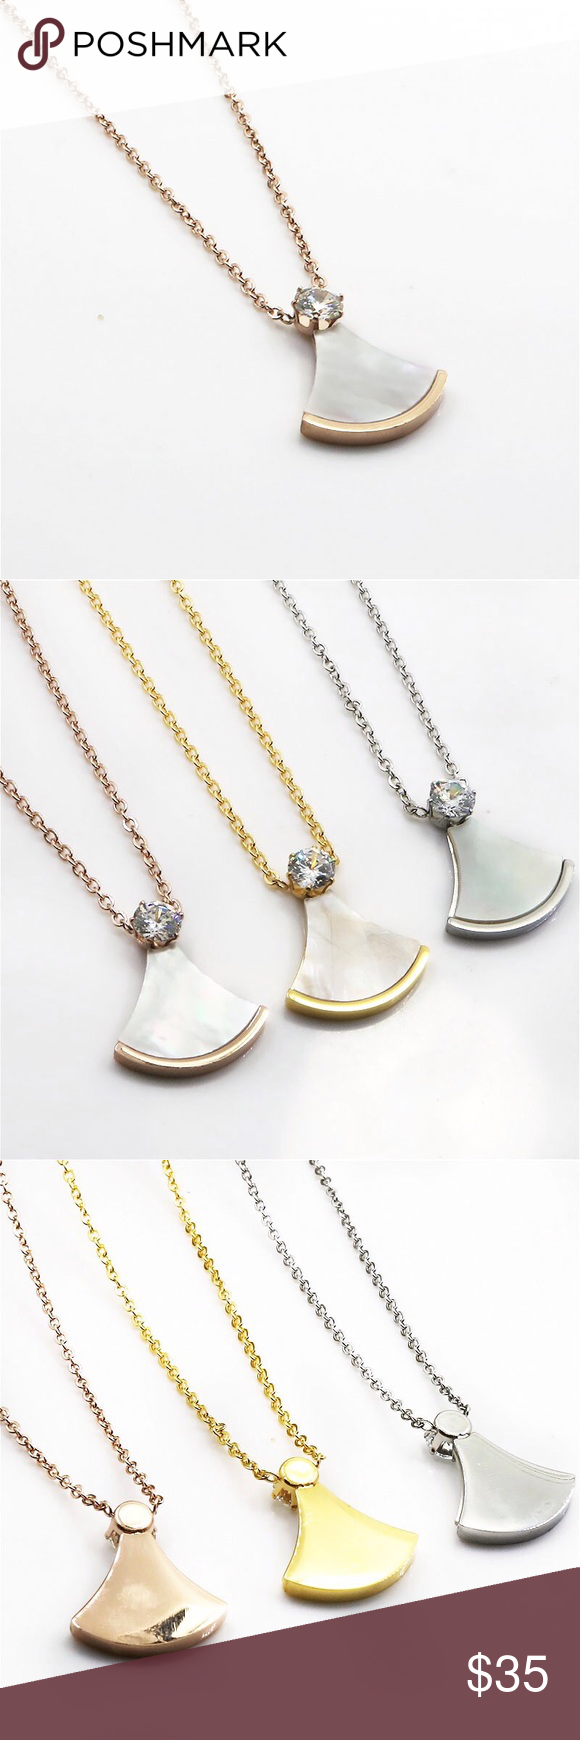 Pearl Pendant Necklace Stainless Steel Pendant Necklace Elegant Delicate Won T Tarnish So It Ll Last You A Long Time Available My Posh Picks Jewel